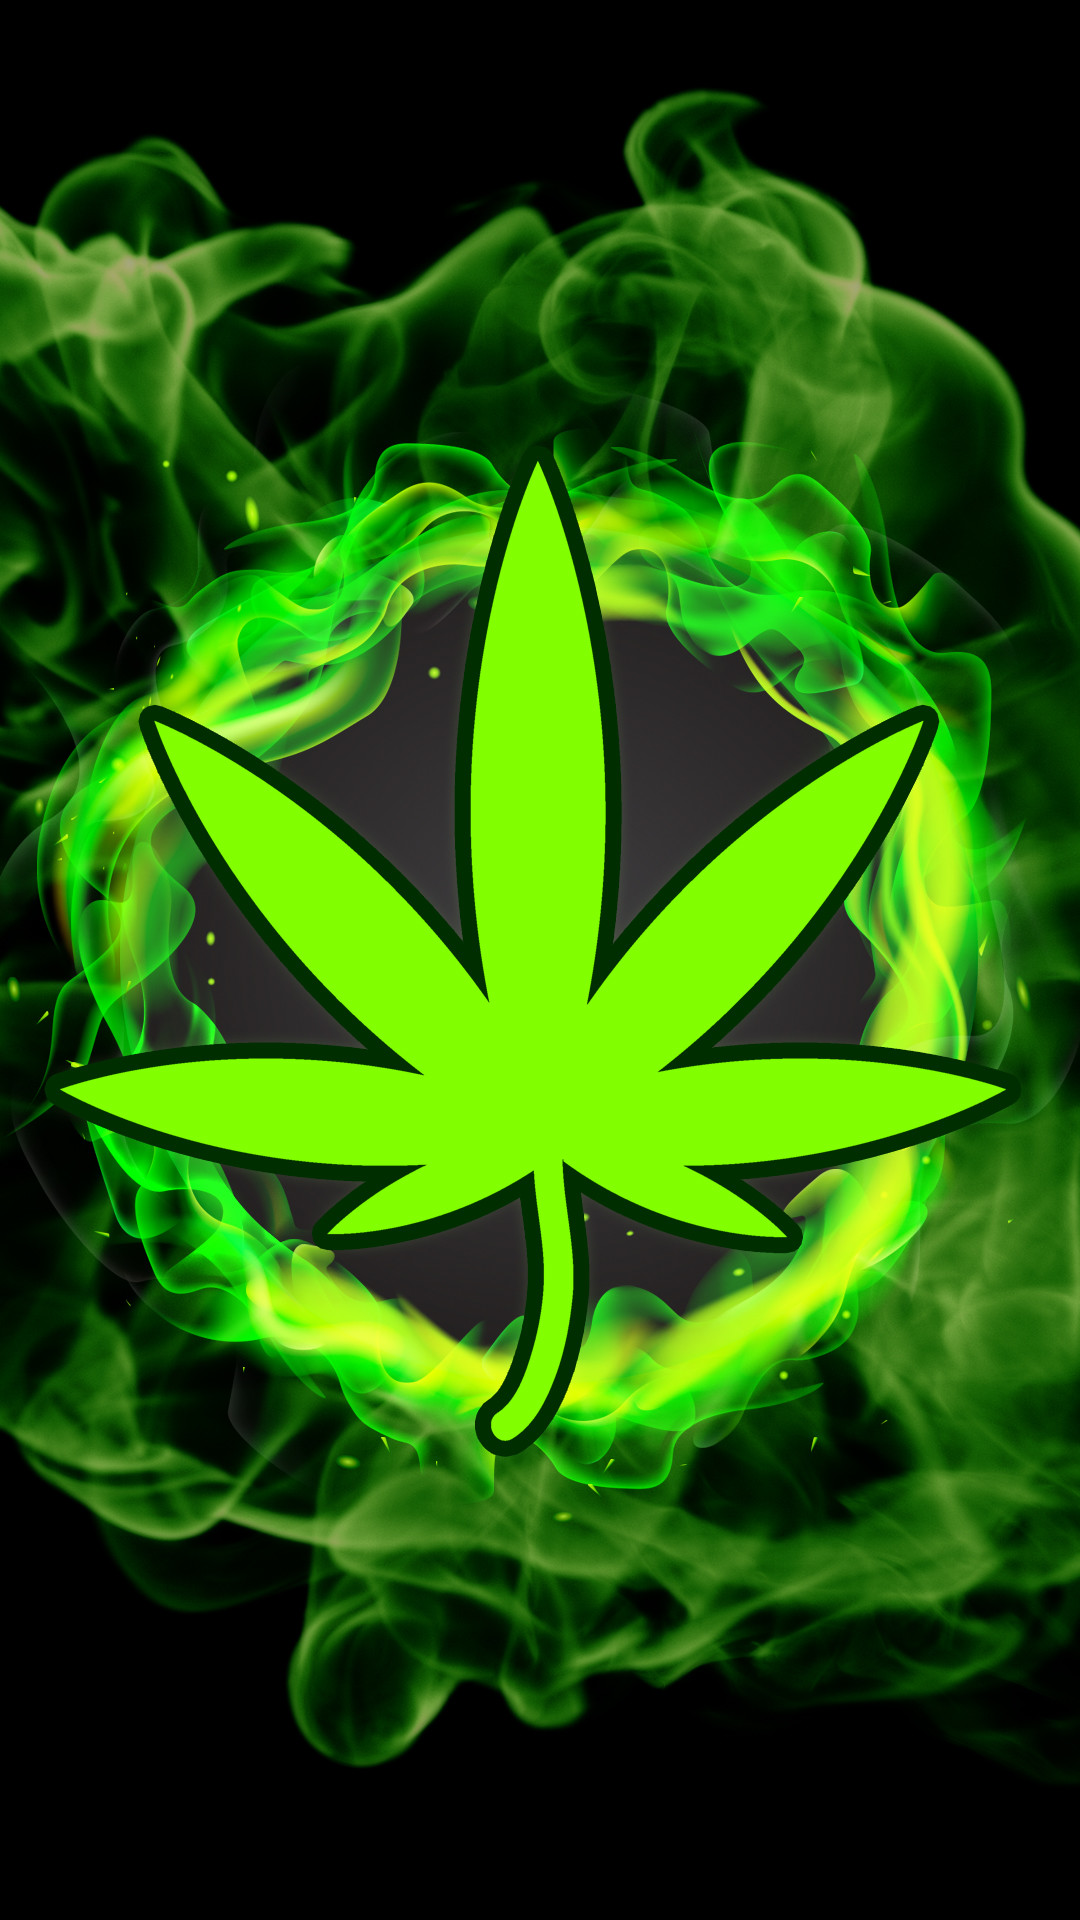 2560x1440 Marijuana 420 Weed Mary Jane Drugs Wallpaper